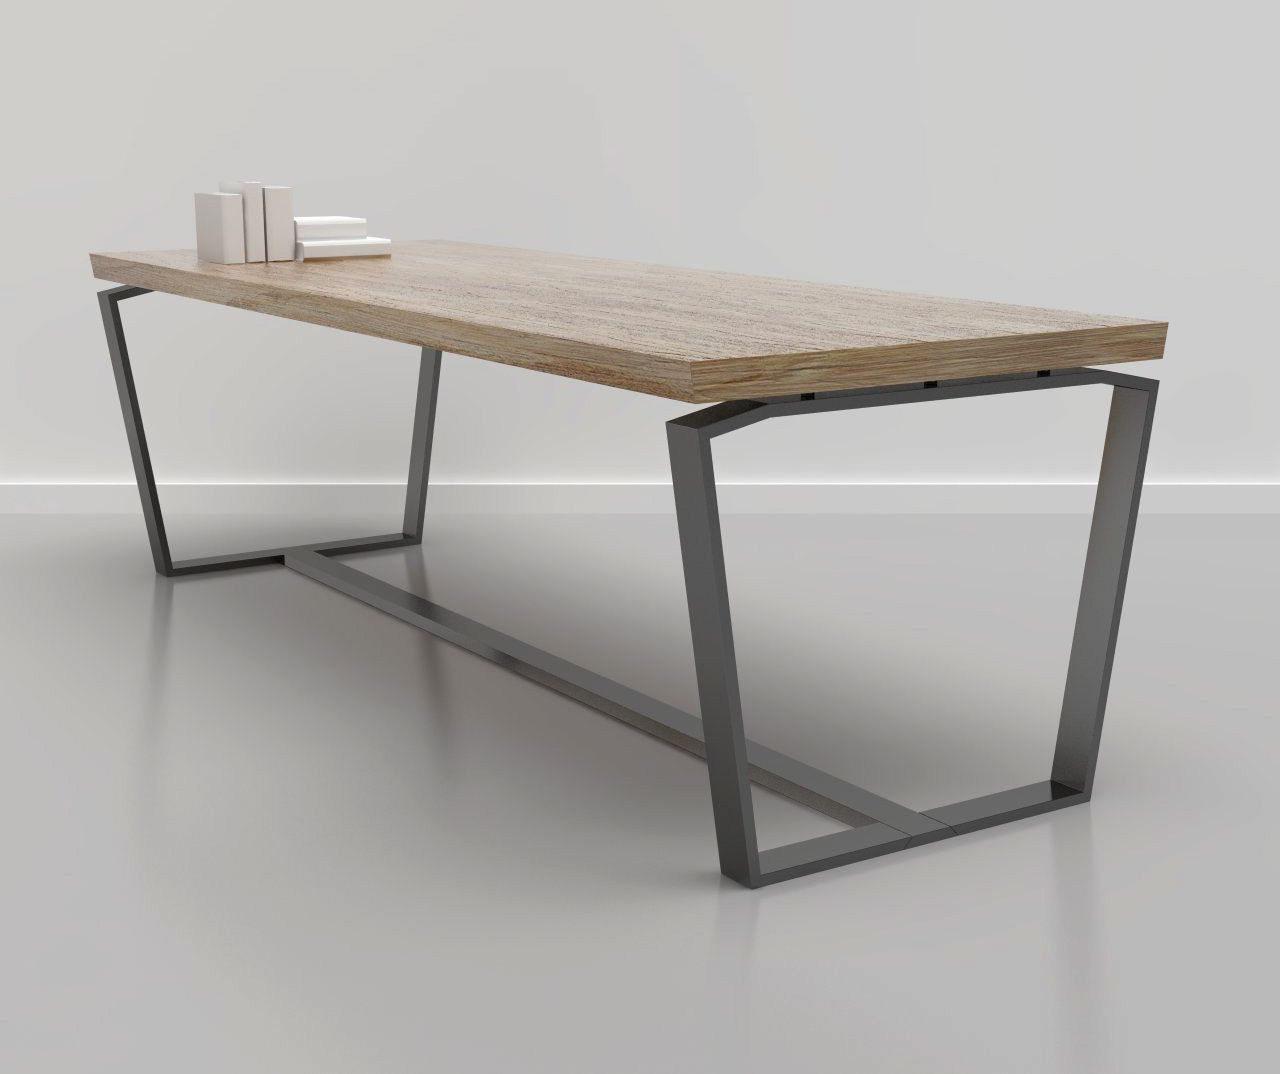 Dining Tables With Brushed Stainless Steel Frame For Latest Jason Phillips Design – Edge Dining Table (View 11 of 30)